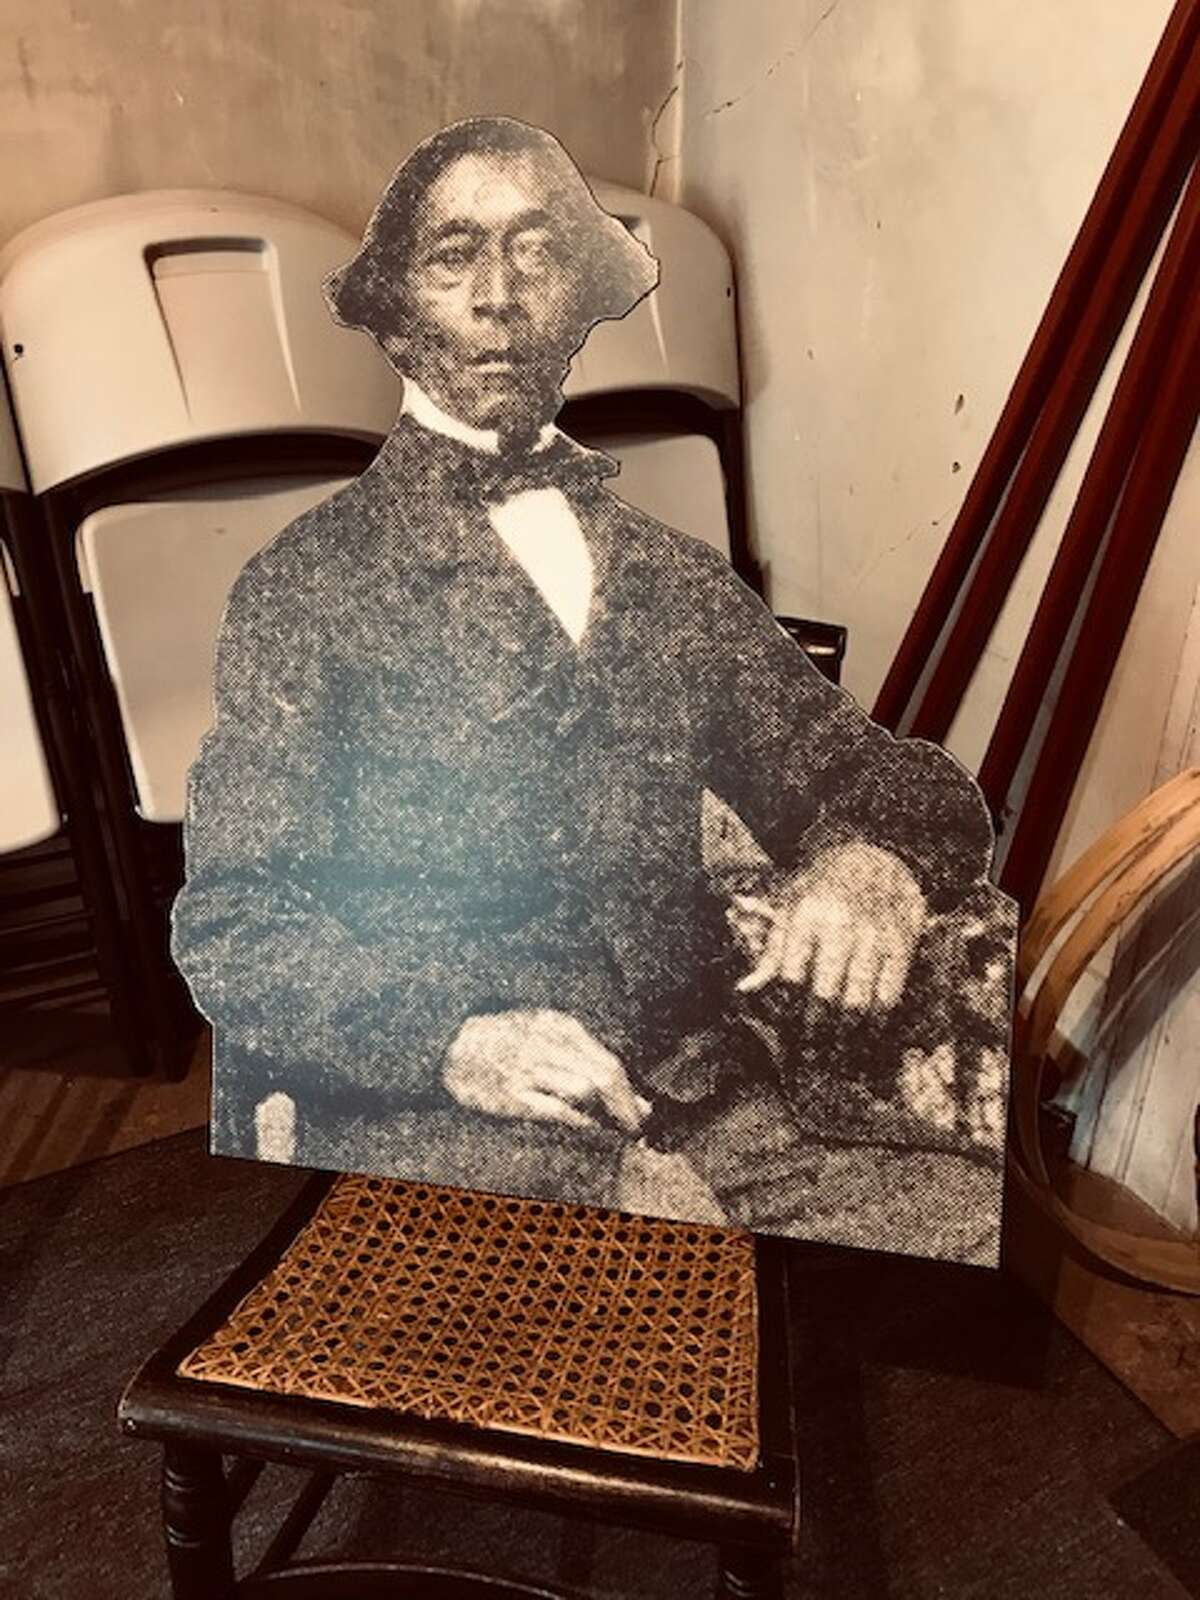 A cut-our photograph with one of the only surviving photographs of Albany abolitionist and Underground Railroad conductor in Albany.